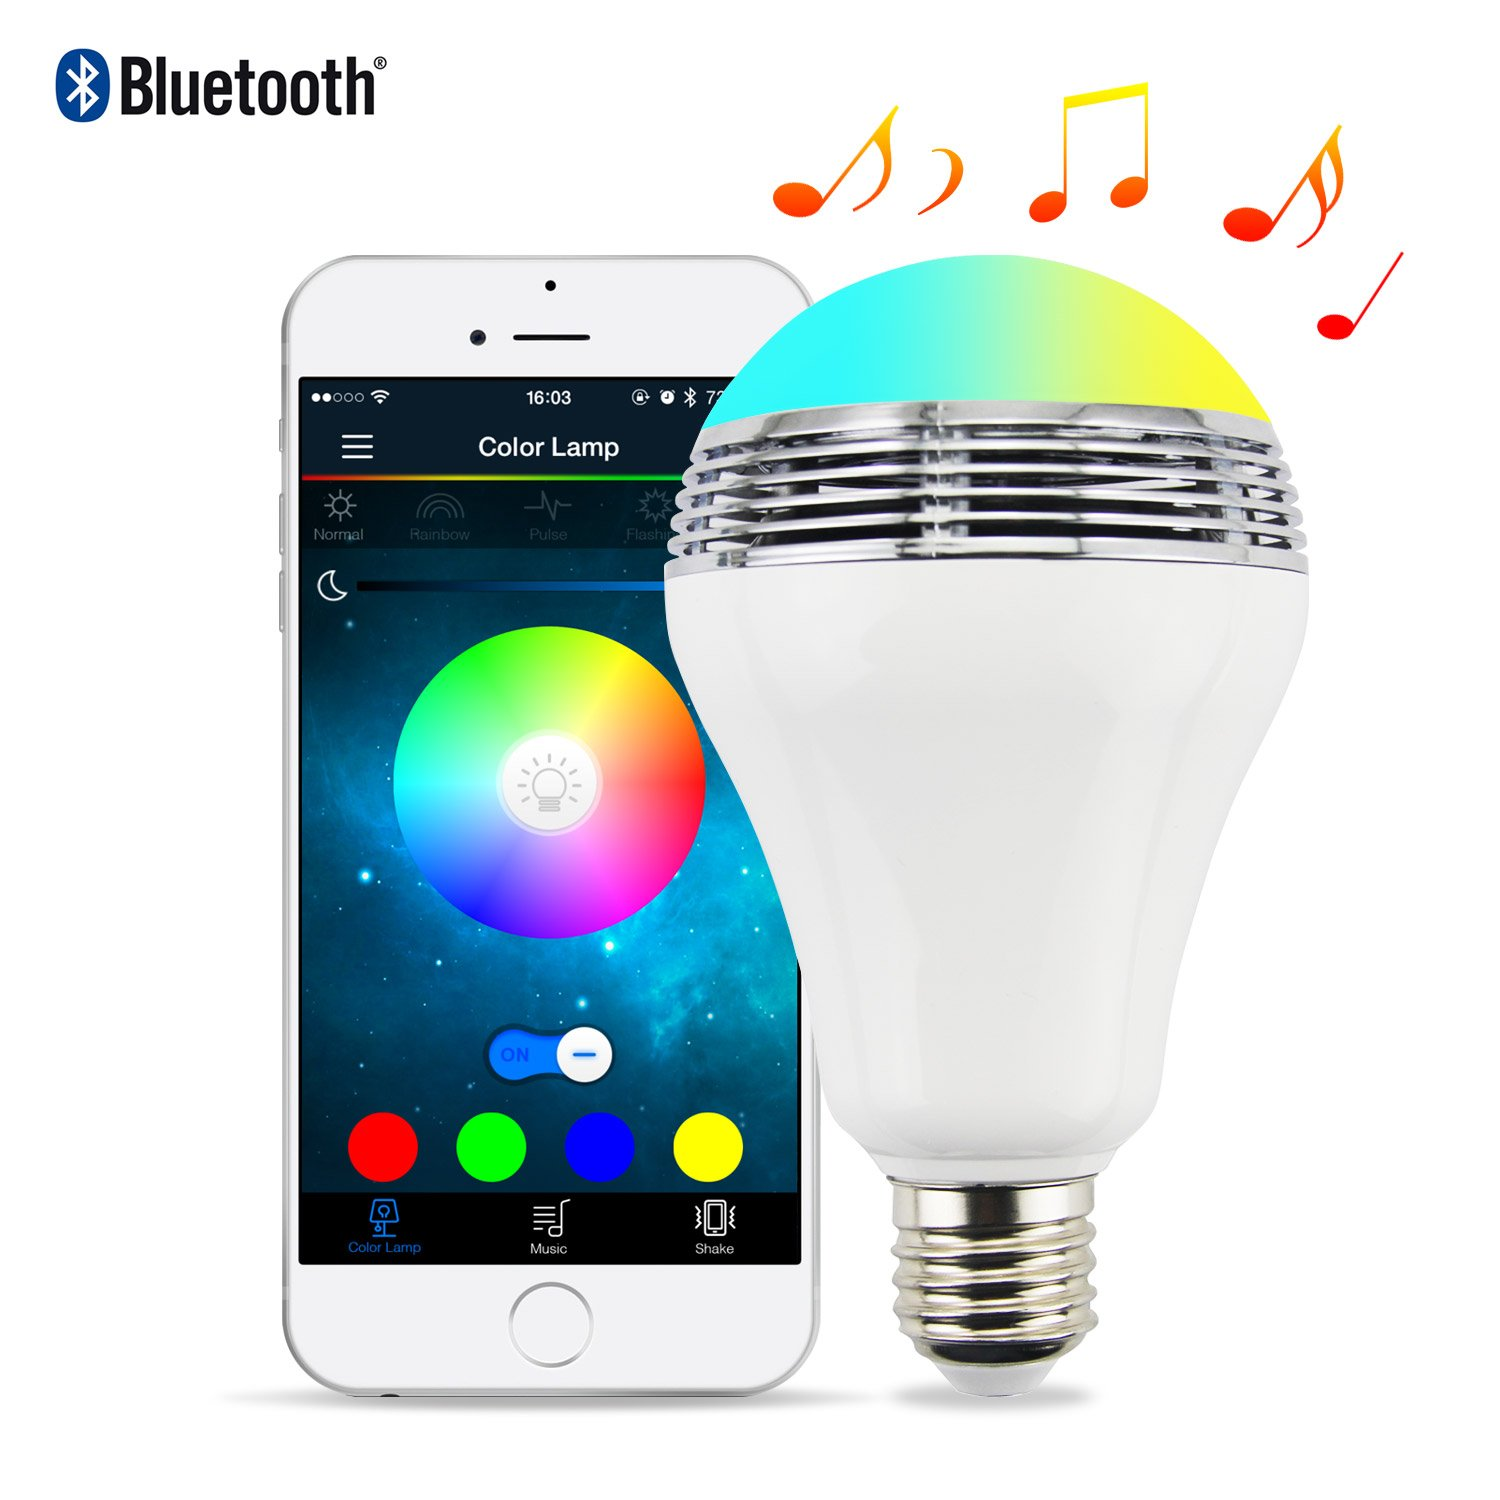 Smart LED Bulbs with Bluetooth Speaker, 6W E27 Dimmable RGB Light Bulbs Color Changing Music Lamps, App Control work with Android and iOS (Multi-colored)